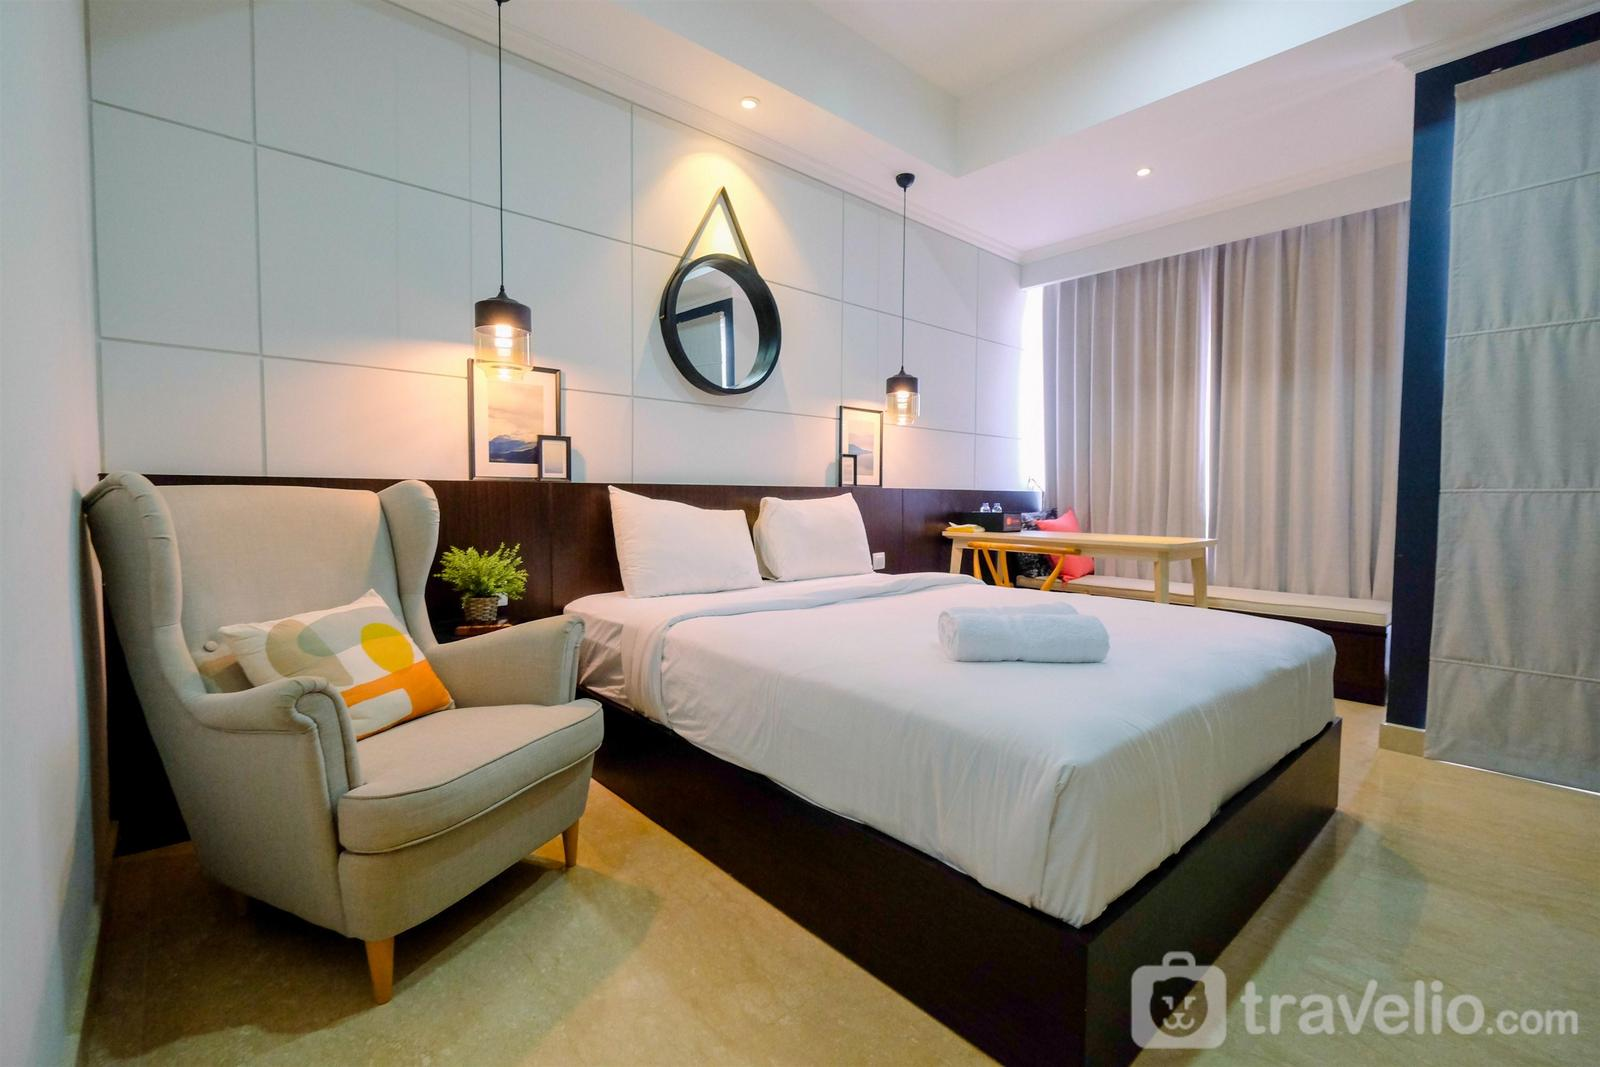 Menteng Park Apartment - Modern Look Studio at Menteng Park Apartment By Travelio